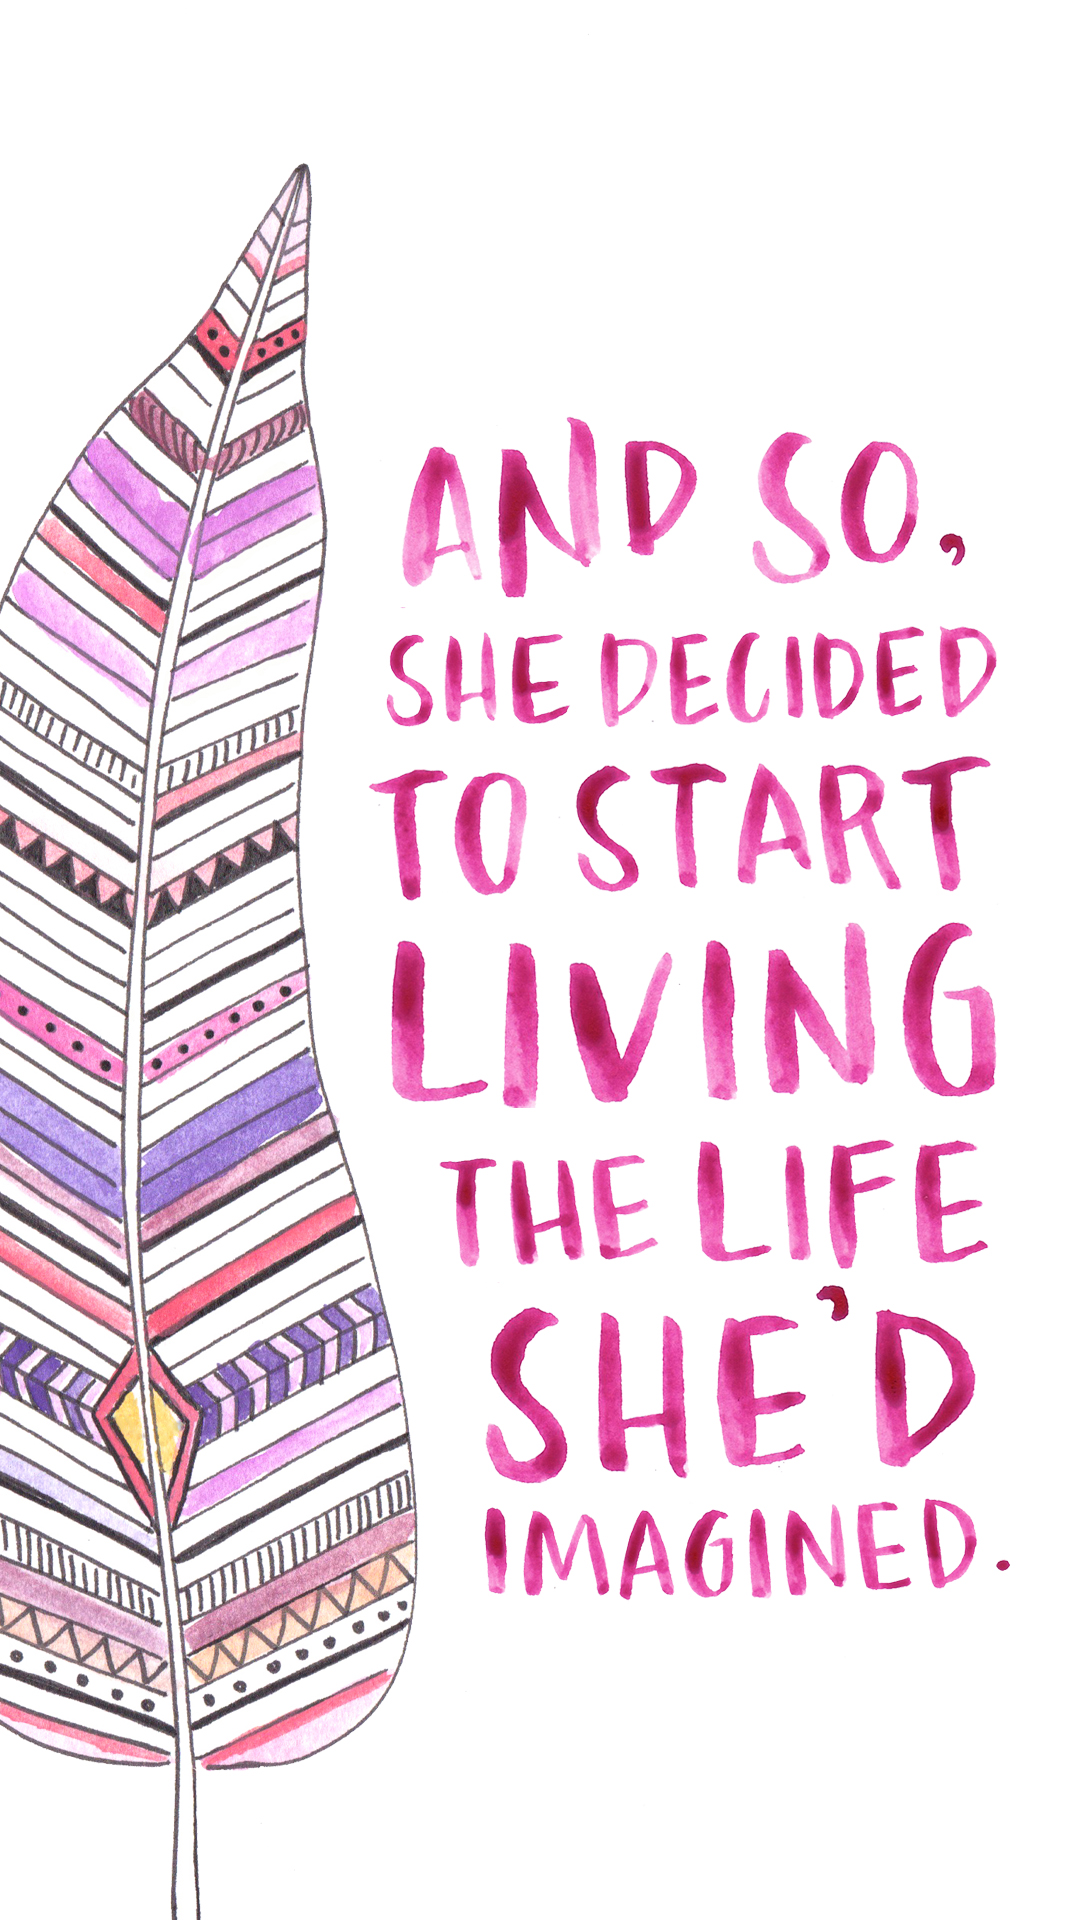 And-so-she-decided-living-the-life-she-d-imagined-wallpaper-wp3402355